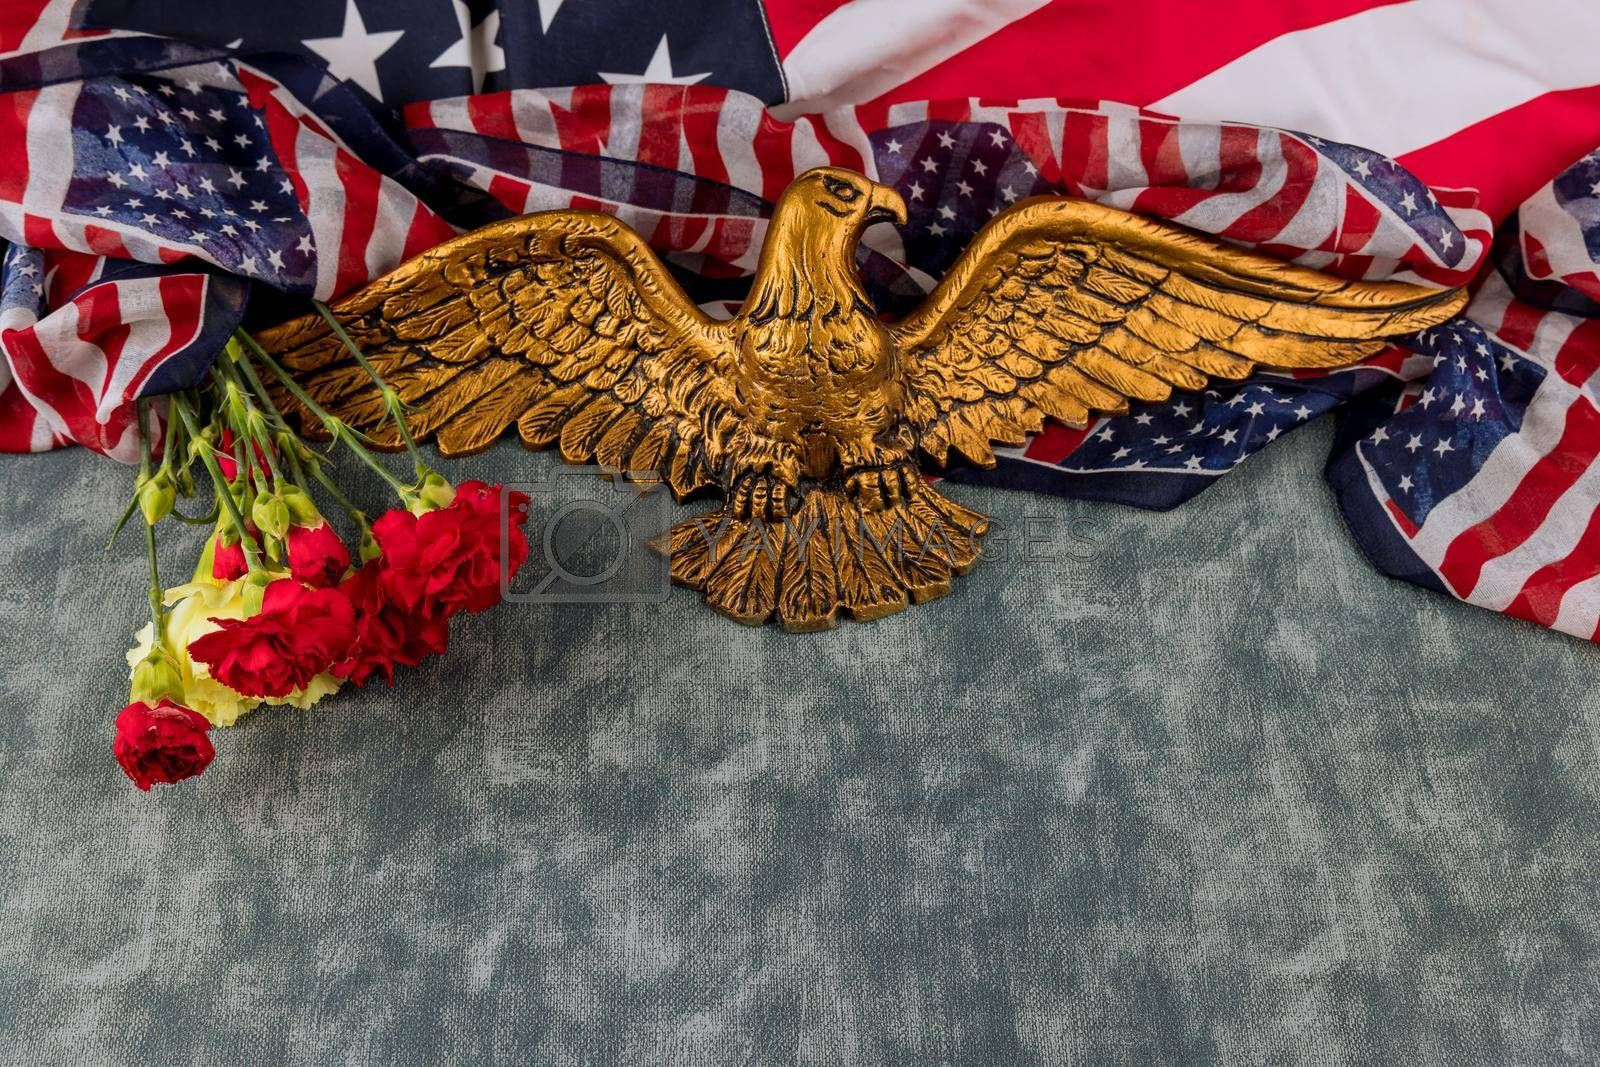 American flag on Memorial day honor respect patriotic military US in pink carnation in the American Bald Eagle